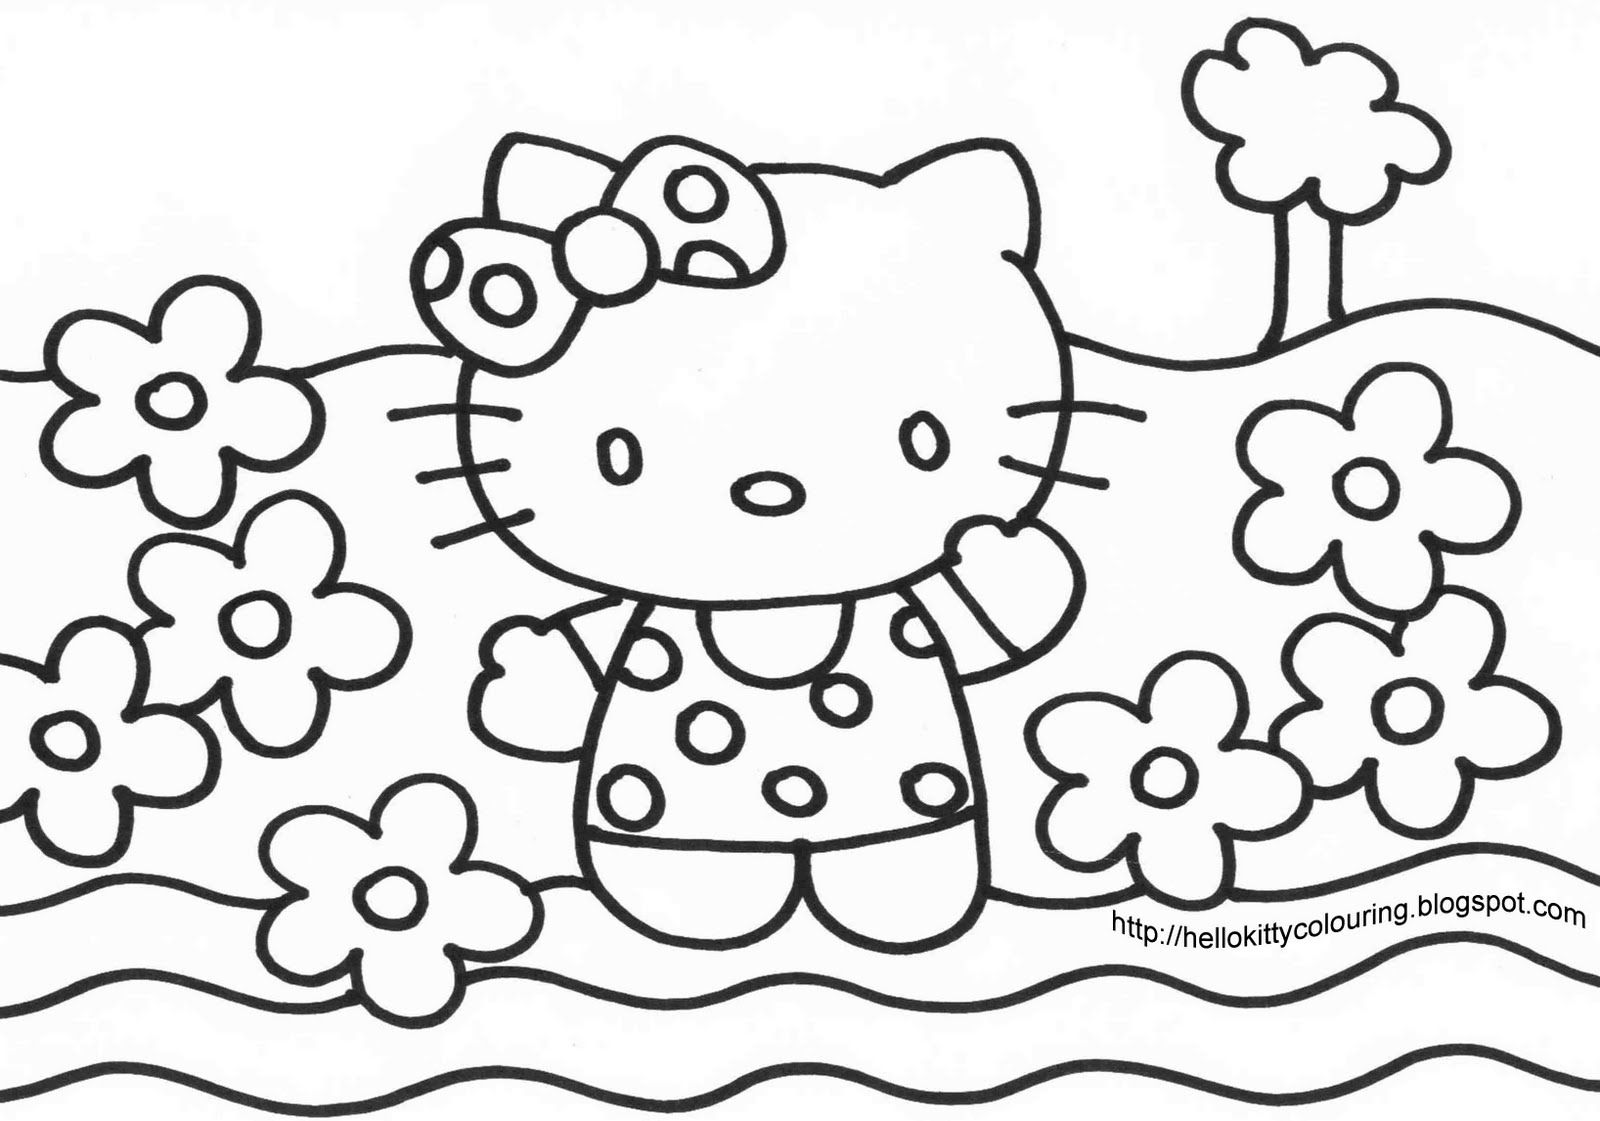 Hello kitty is a fictional renowned cartoon personality which is mostly admired by the little girls or toddlers this little kitty has an adorable face tha